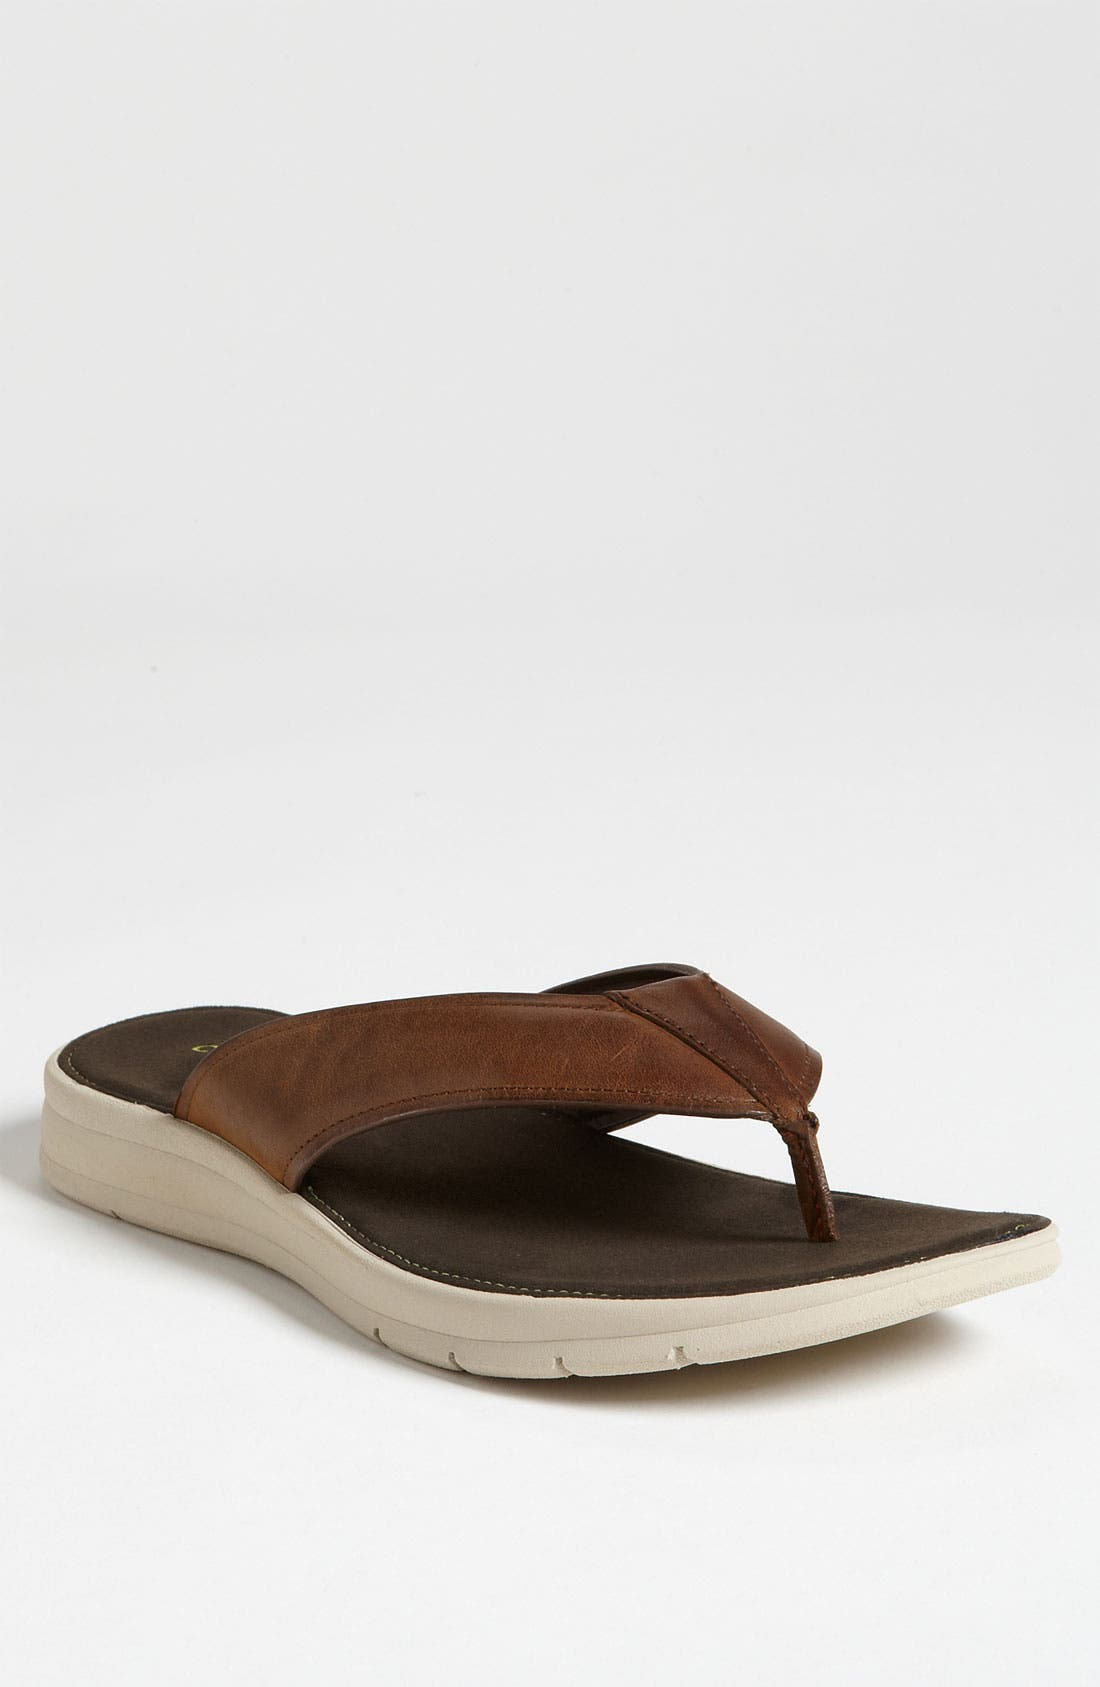 Alternate Image 1 Selected - Cole Haan 'Air Odell' Flip Flop